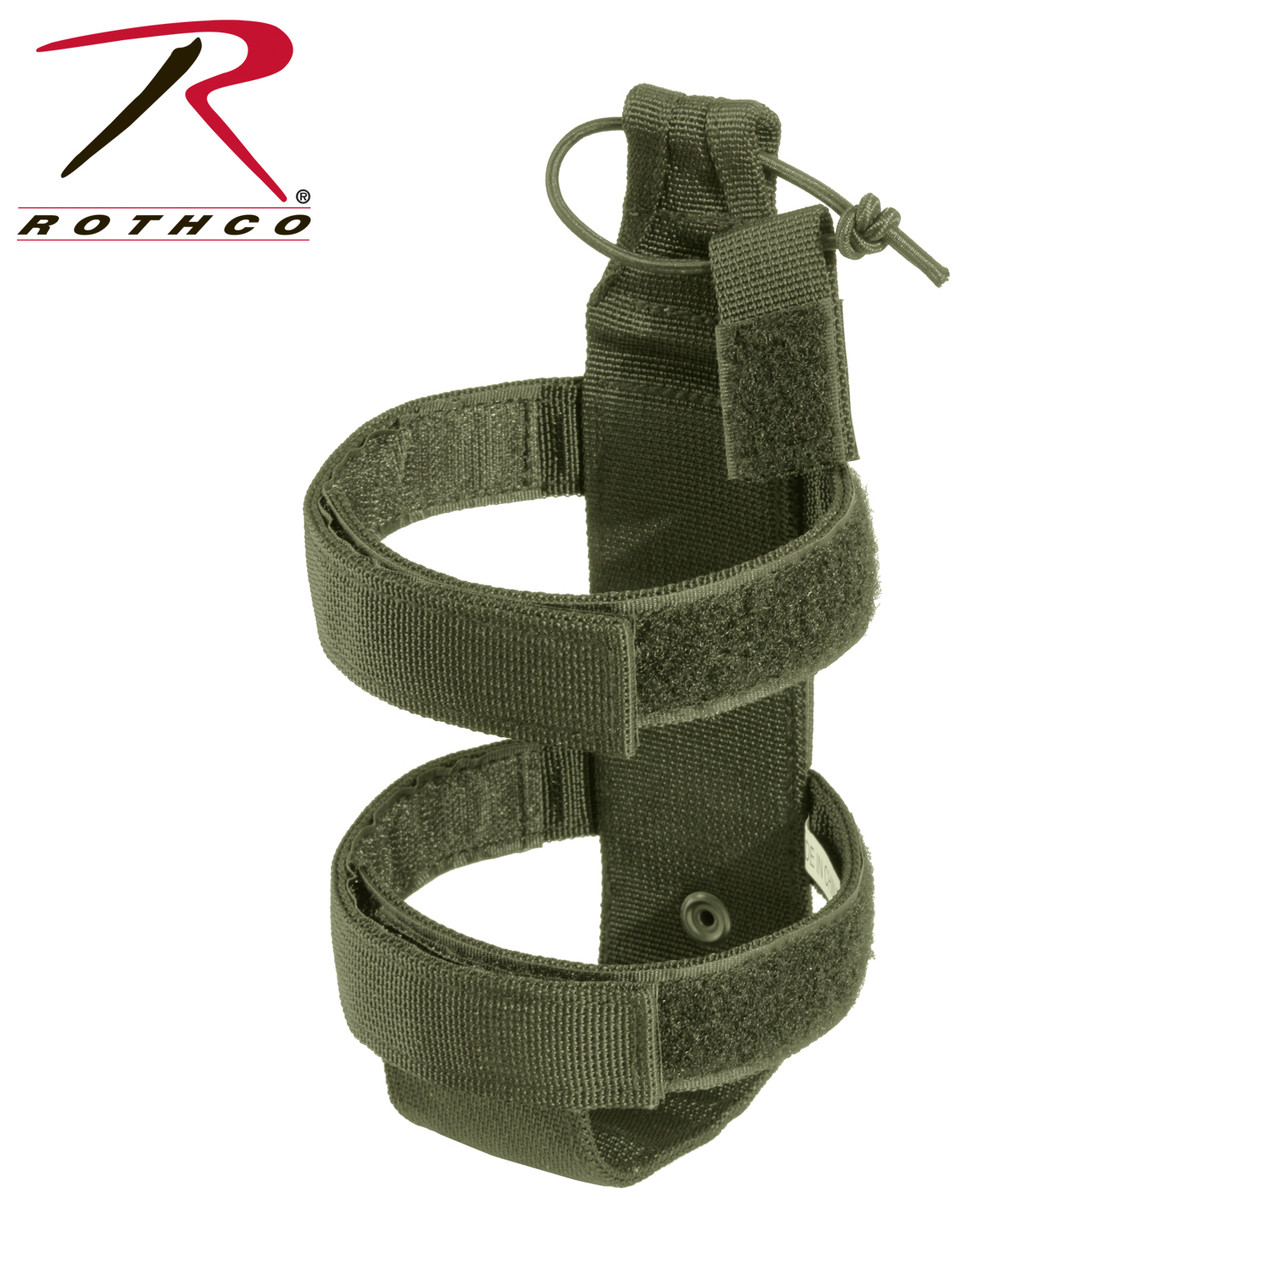 70a4f0d9267 Rothco Lightweight MOLLE Bottle Carrier - Hero Outdoors